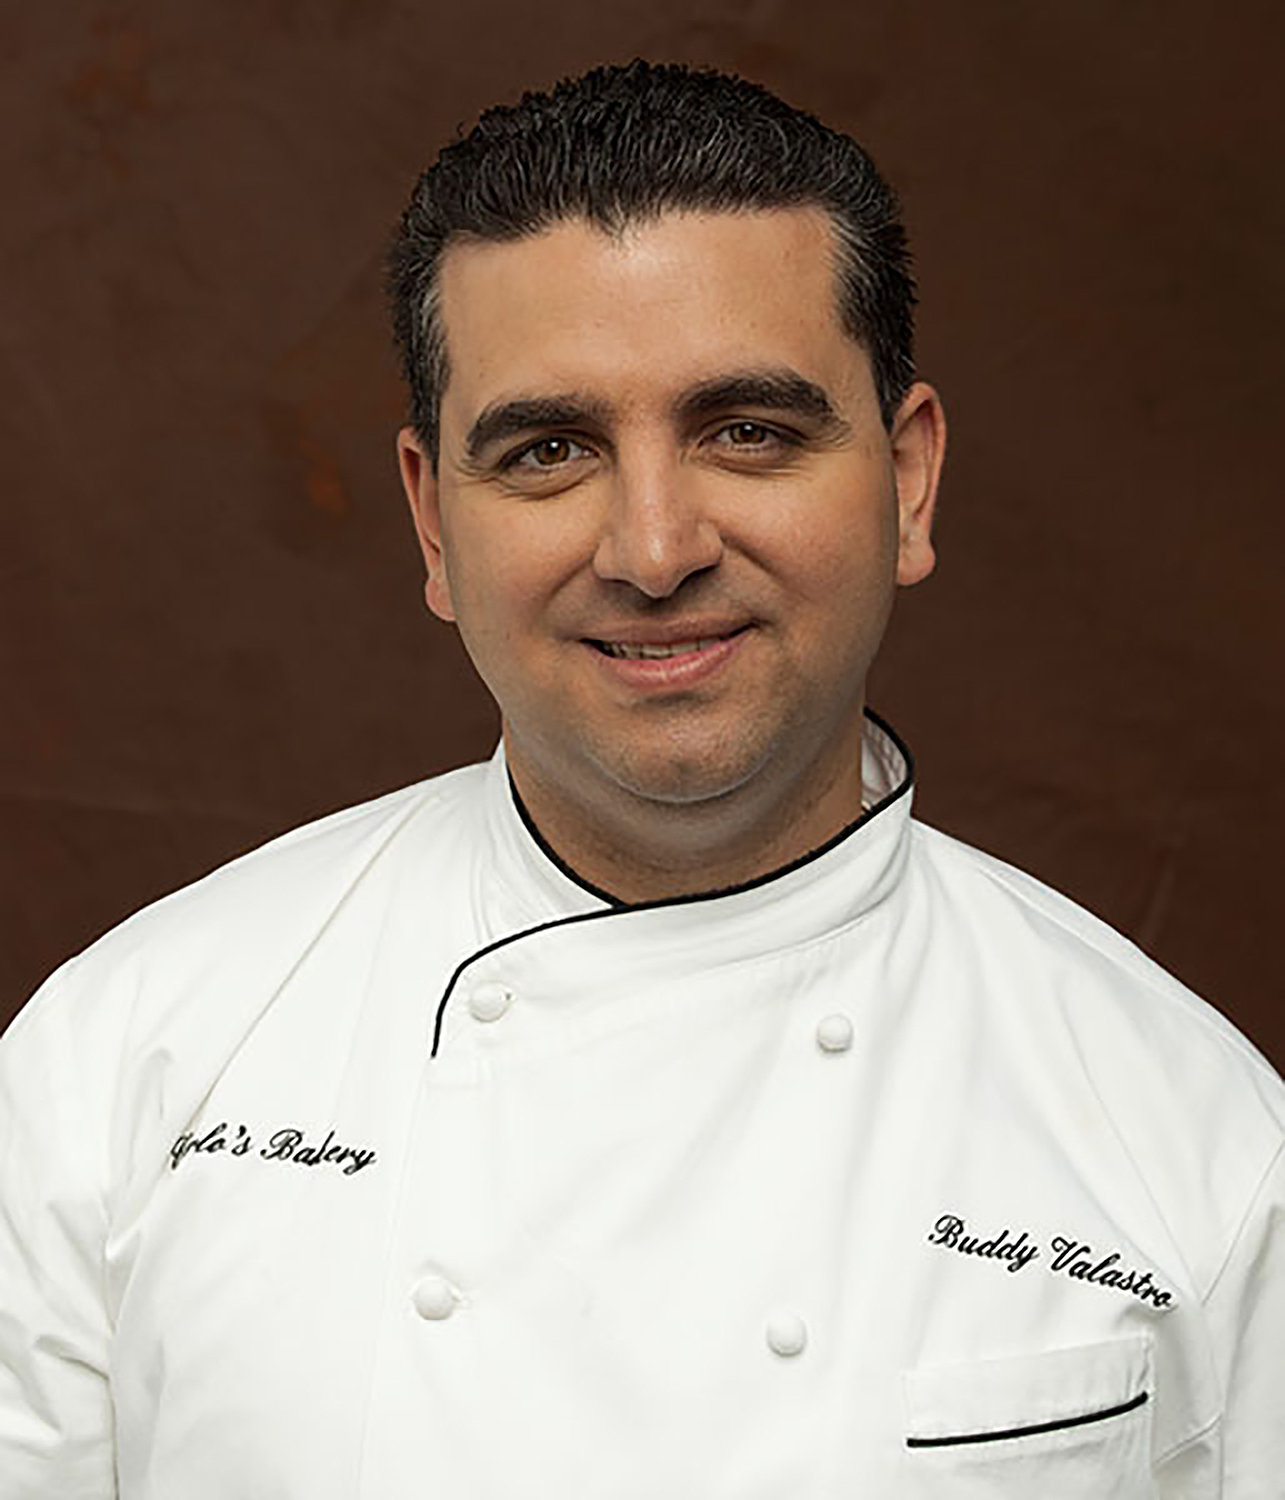 Buddy-Valastro-BIO-PHOTO-2.jpg